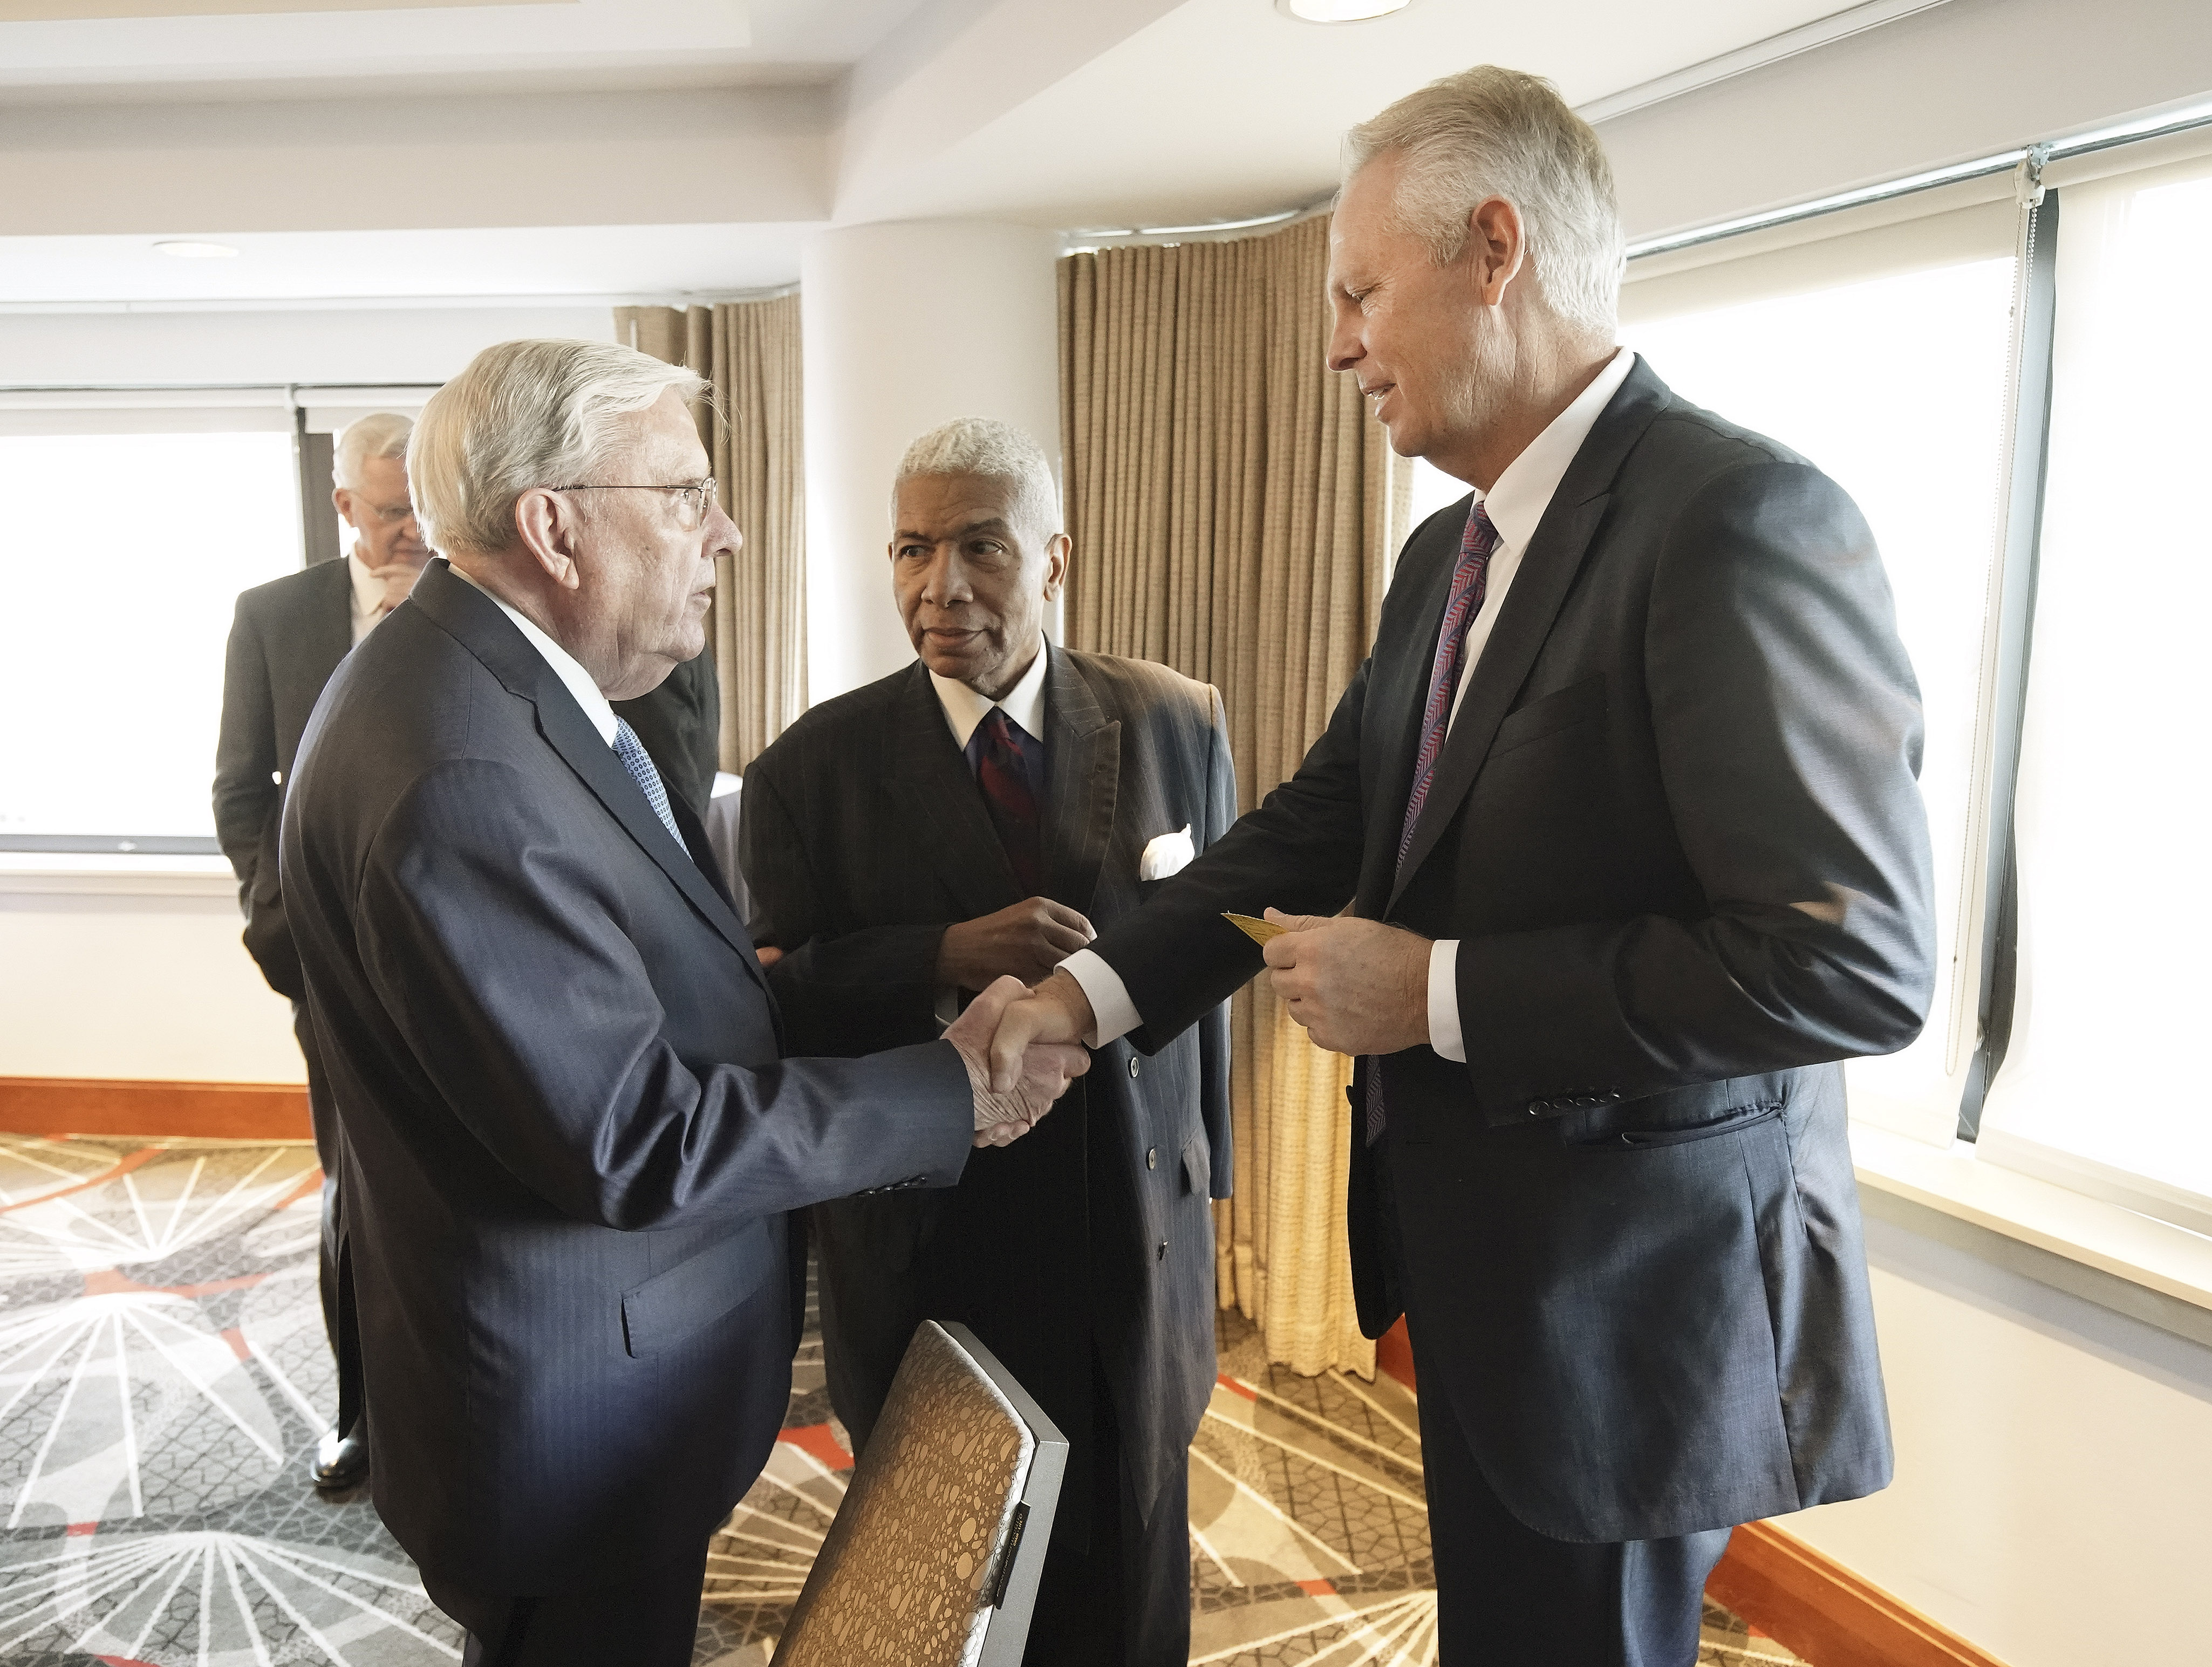 President M. Russell Ballard, acting president of the Quorum of the Twelve Apostles of The Church of Jesus Christ of Latter-day Saints, meets with Danny Ainge, general manager and President of Basketball Operations for the Boston Celtics, and the Rev. Eugene Rivers in Boston on Saturday, Oct. 19, 2019.